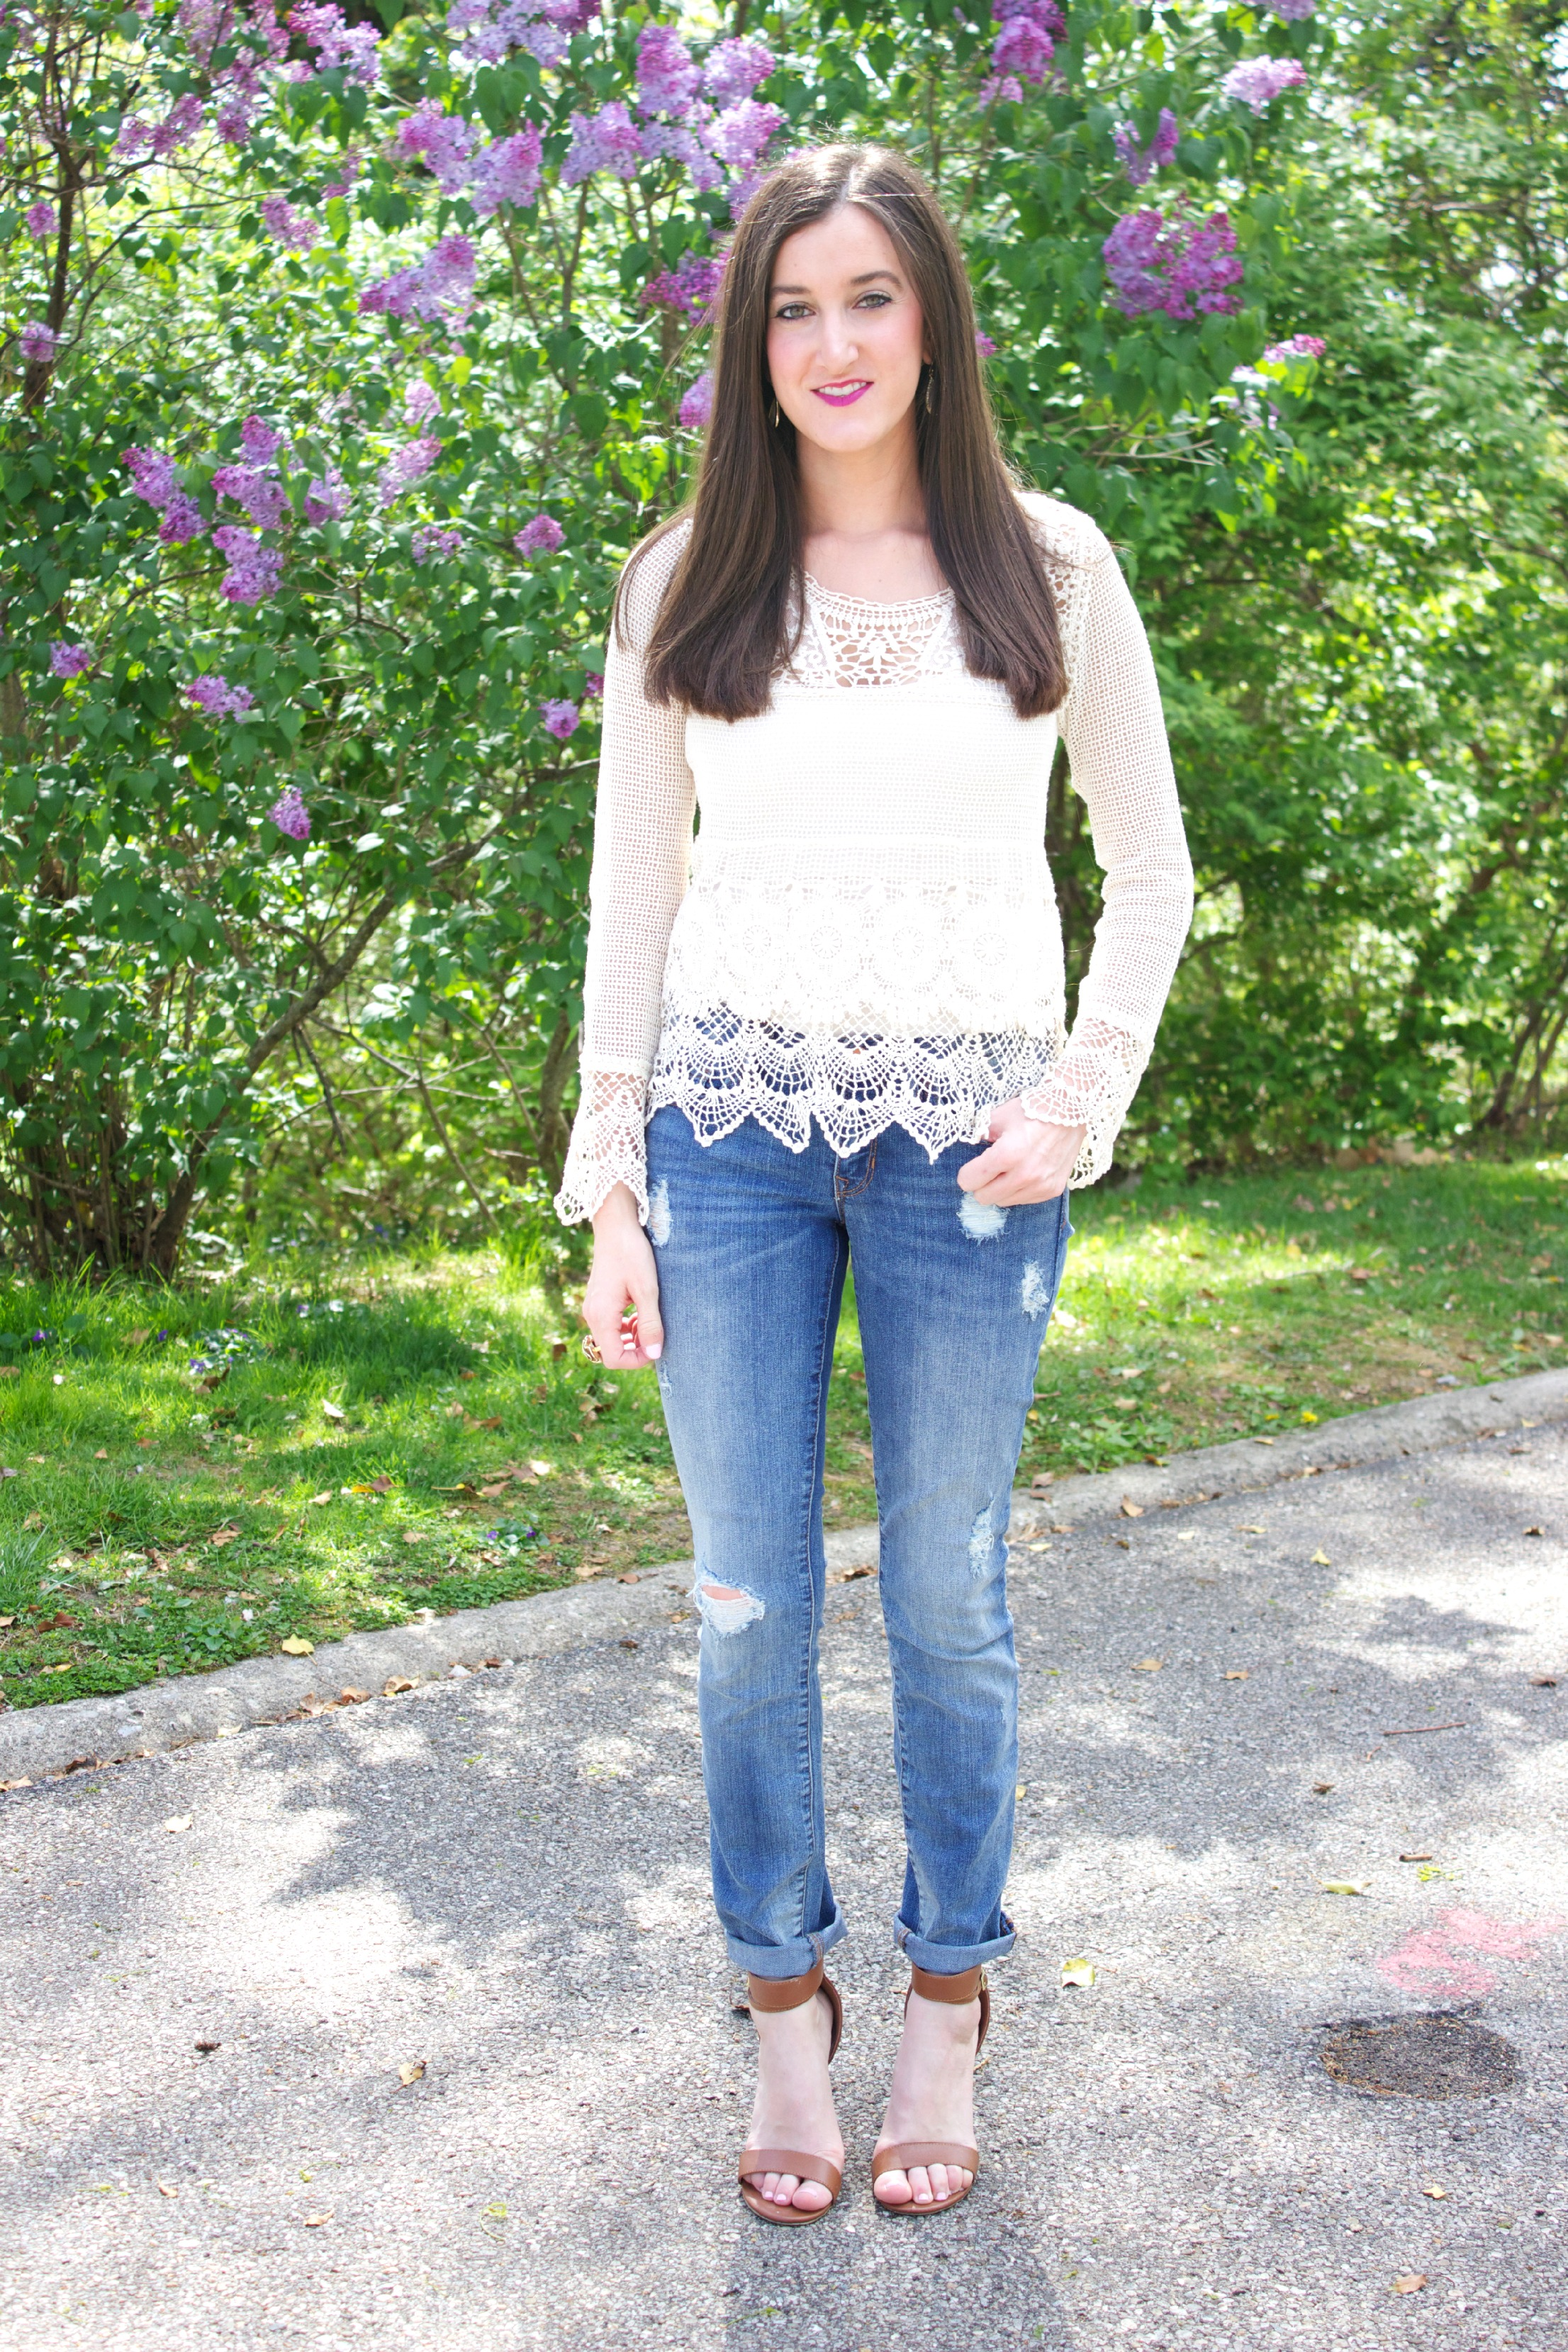 How To Wear a Crocheted Knit Top